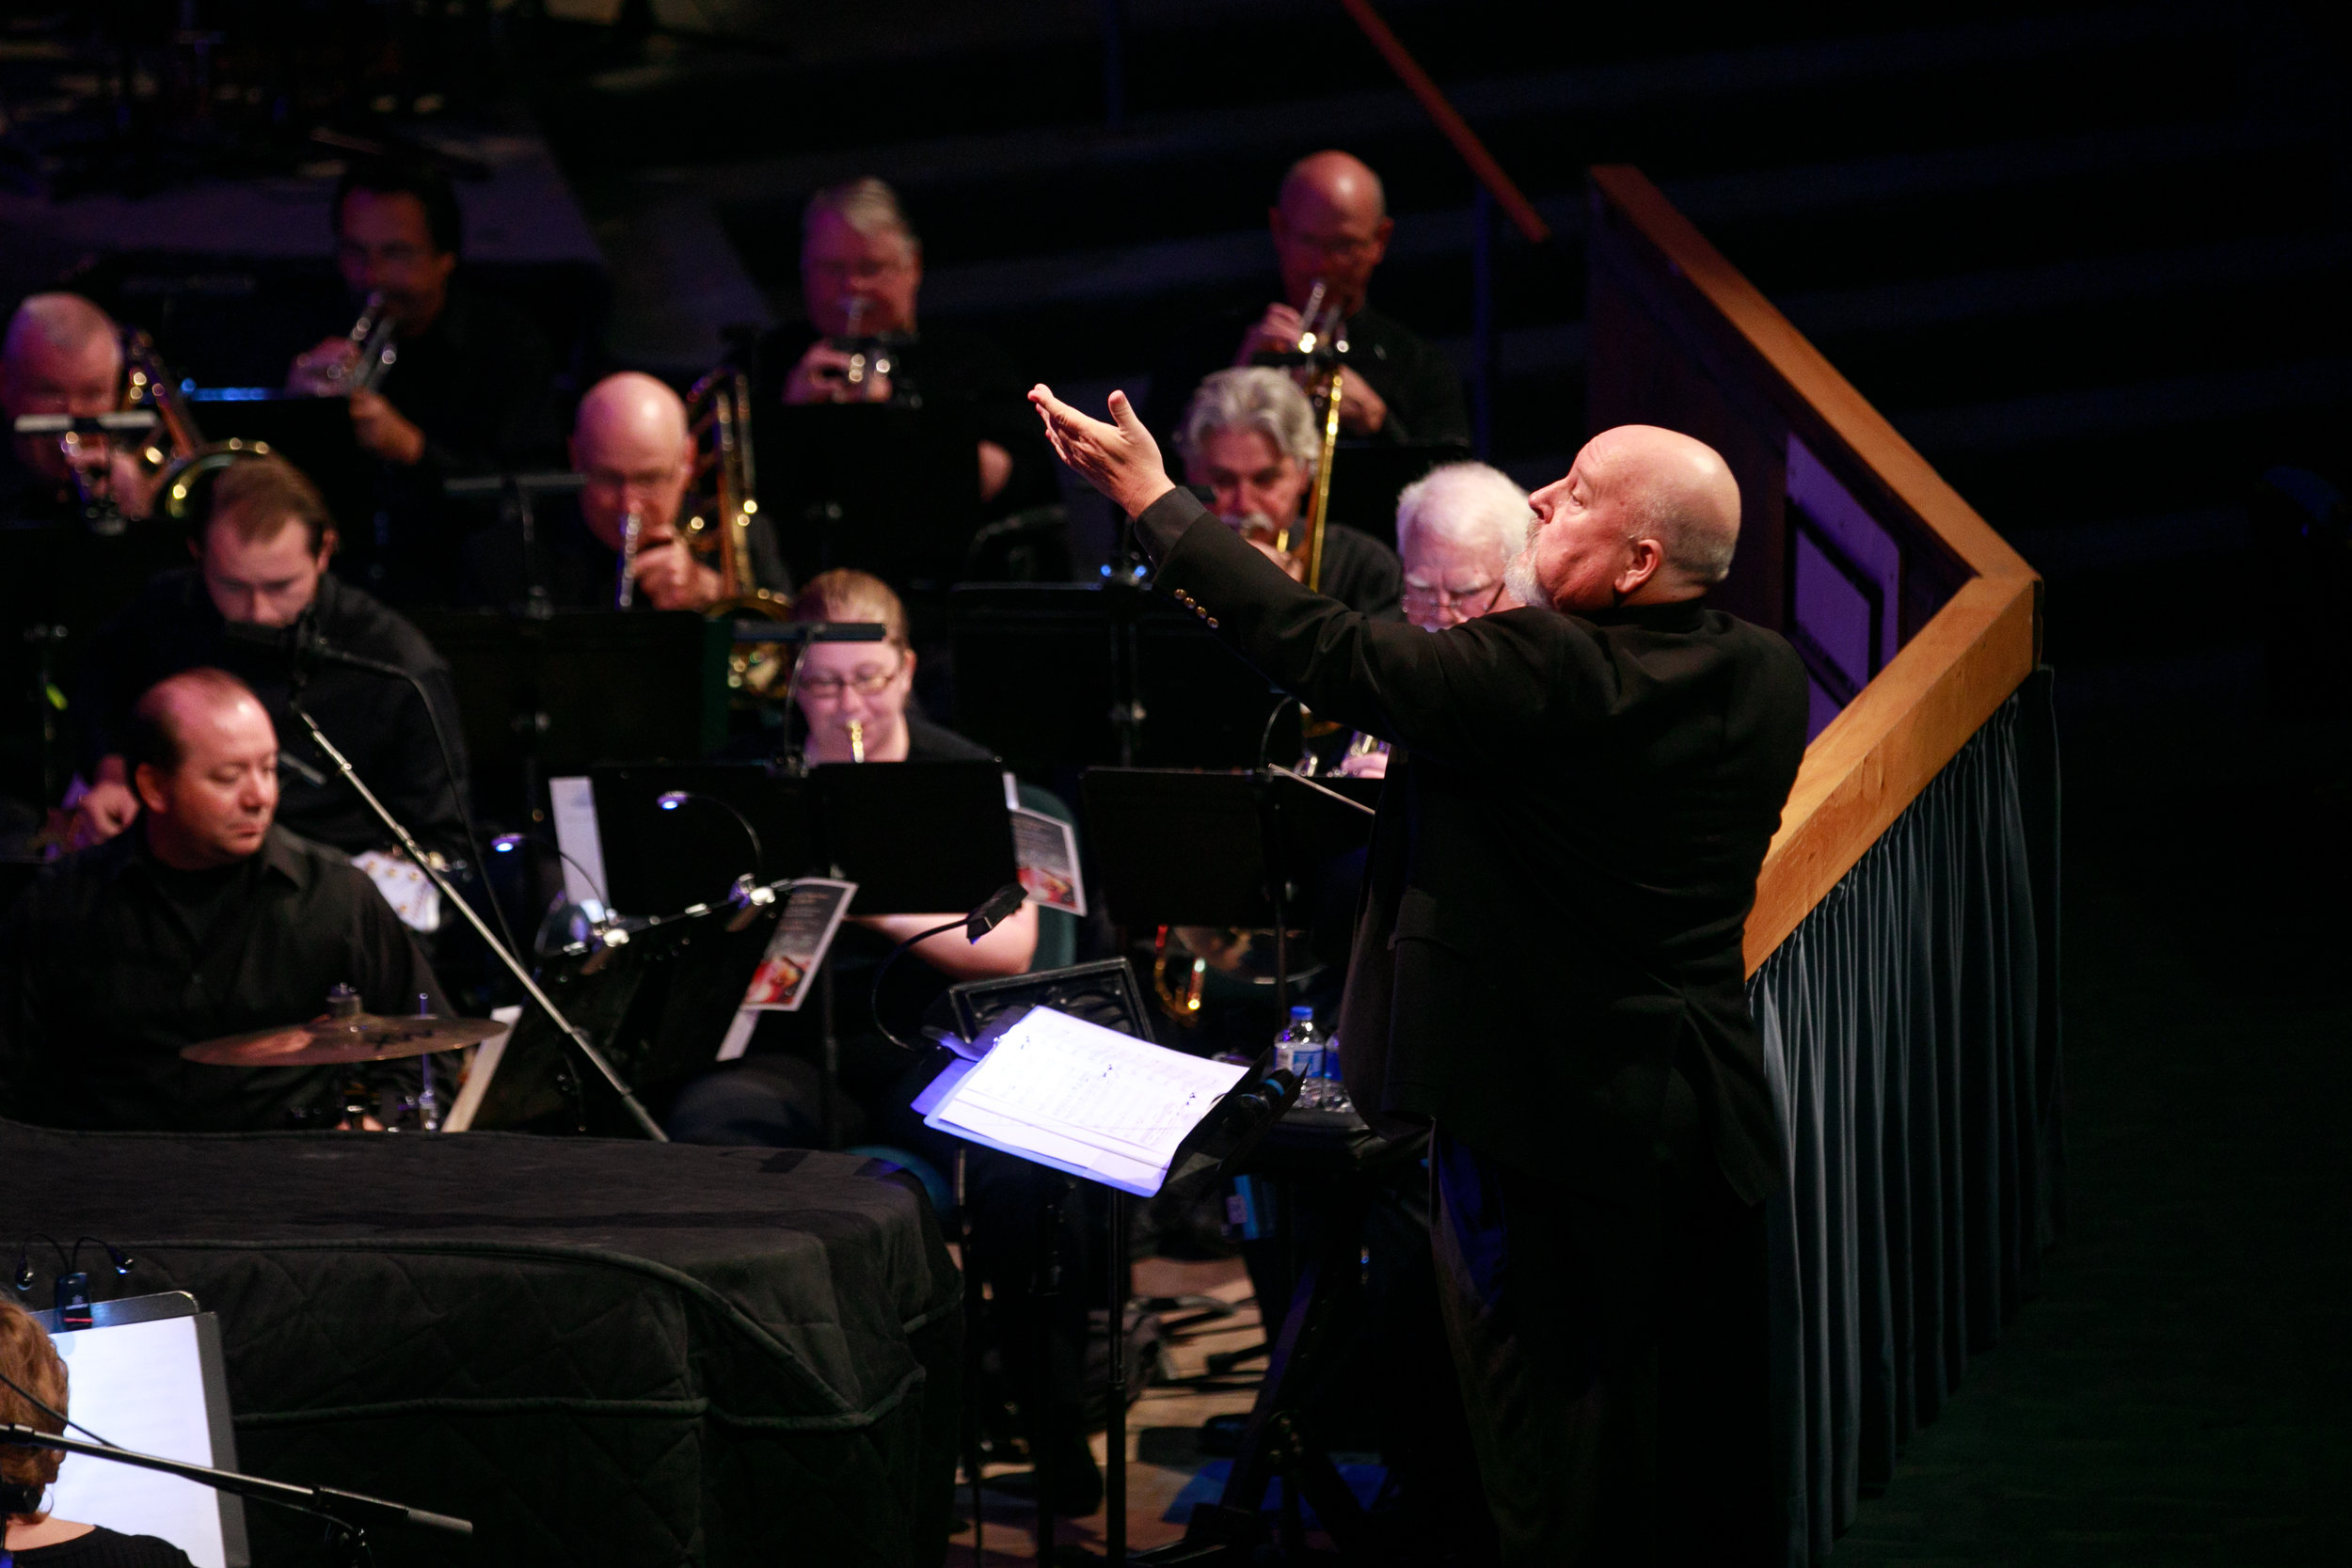 Songs for the Soul - An Evening of Inspiring Music November 9, 2018PHOTO GALLERY